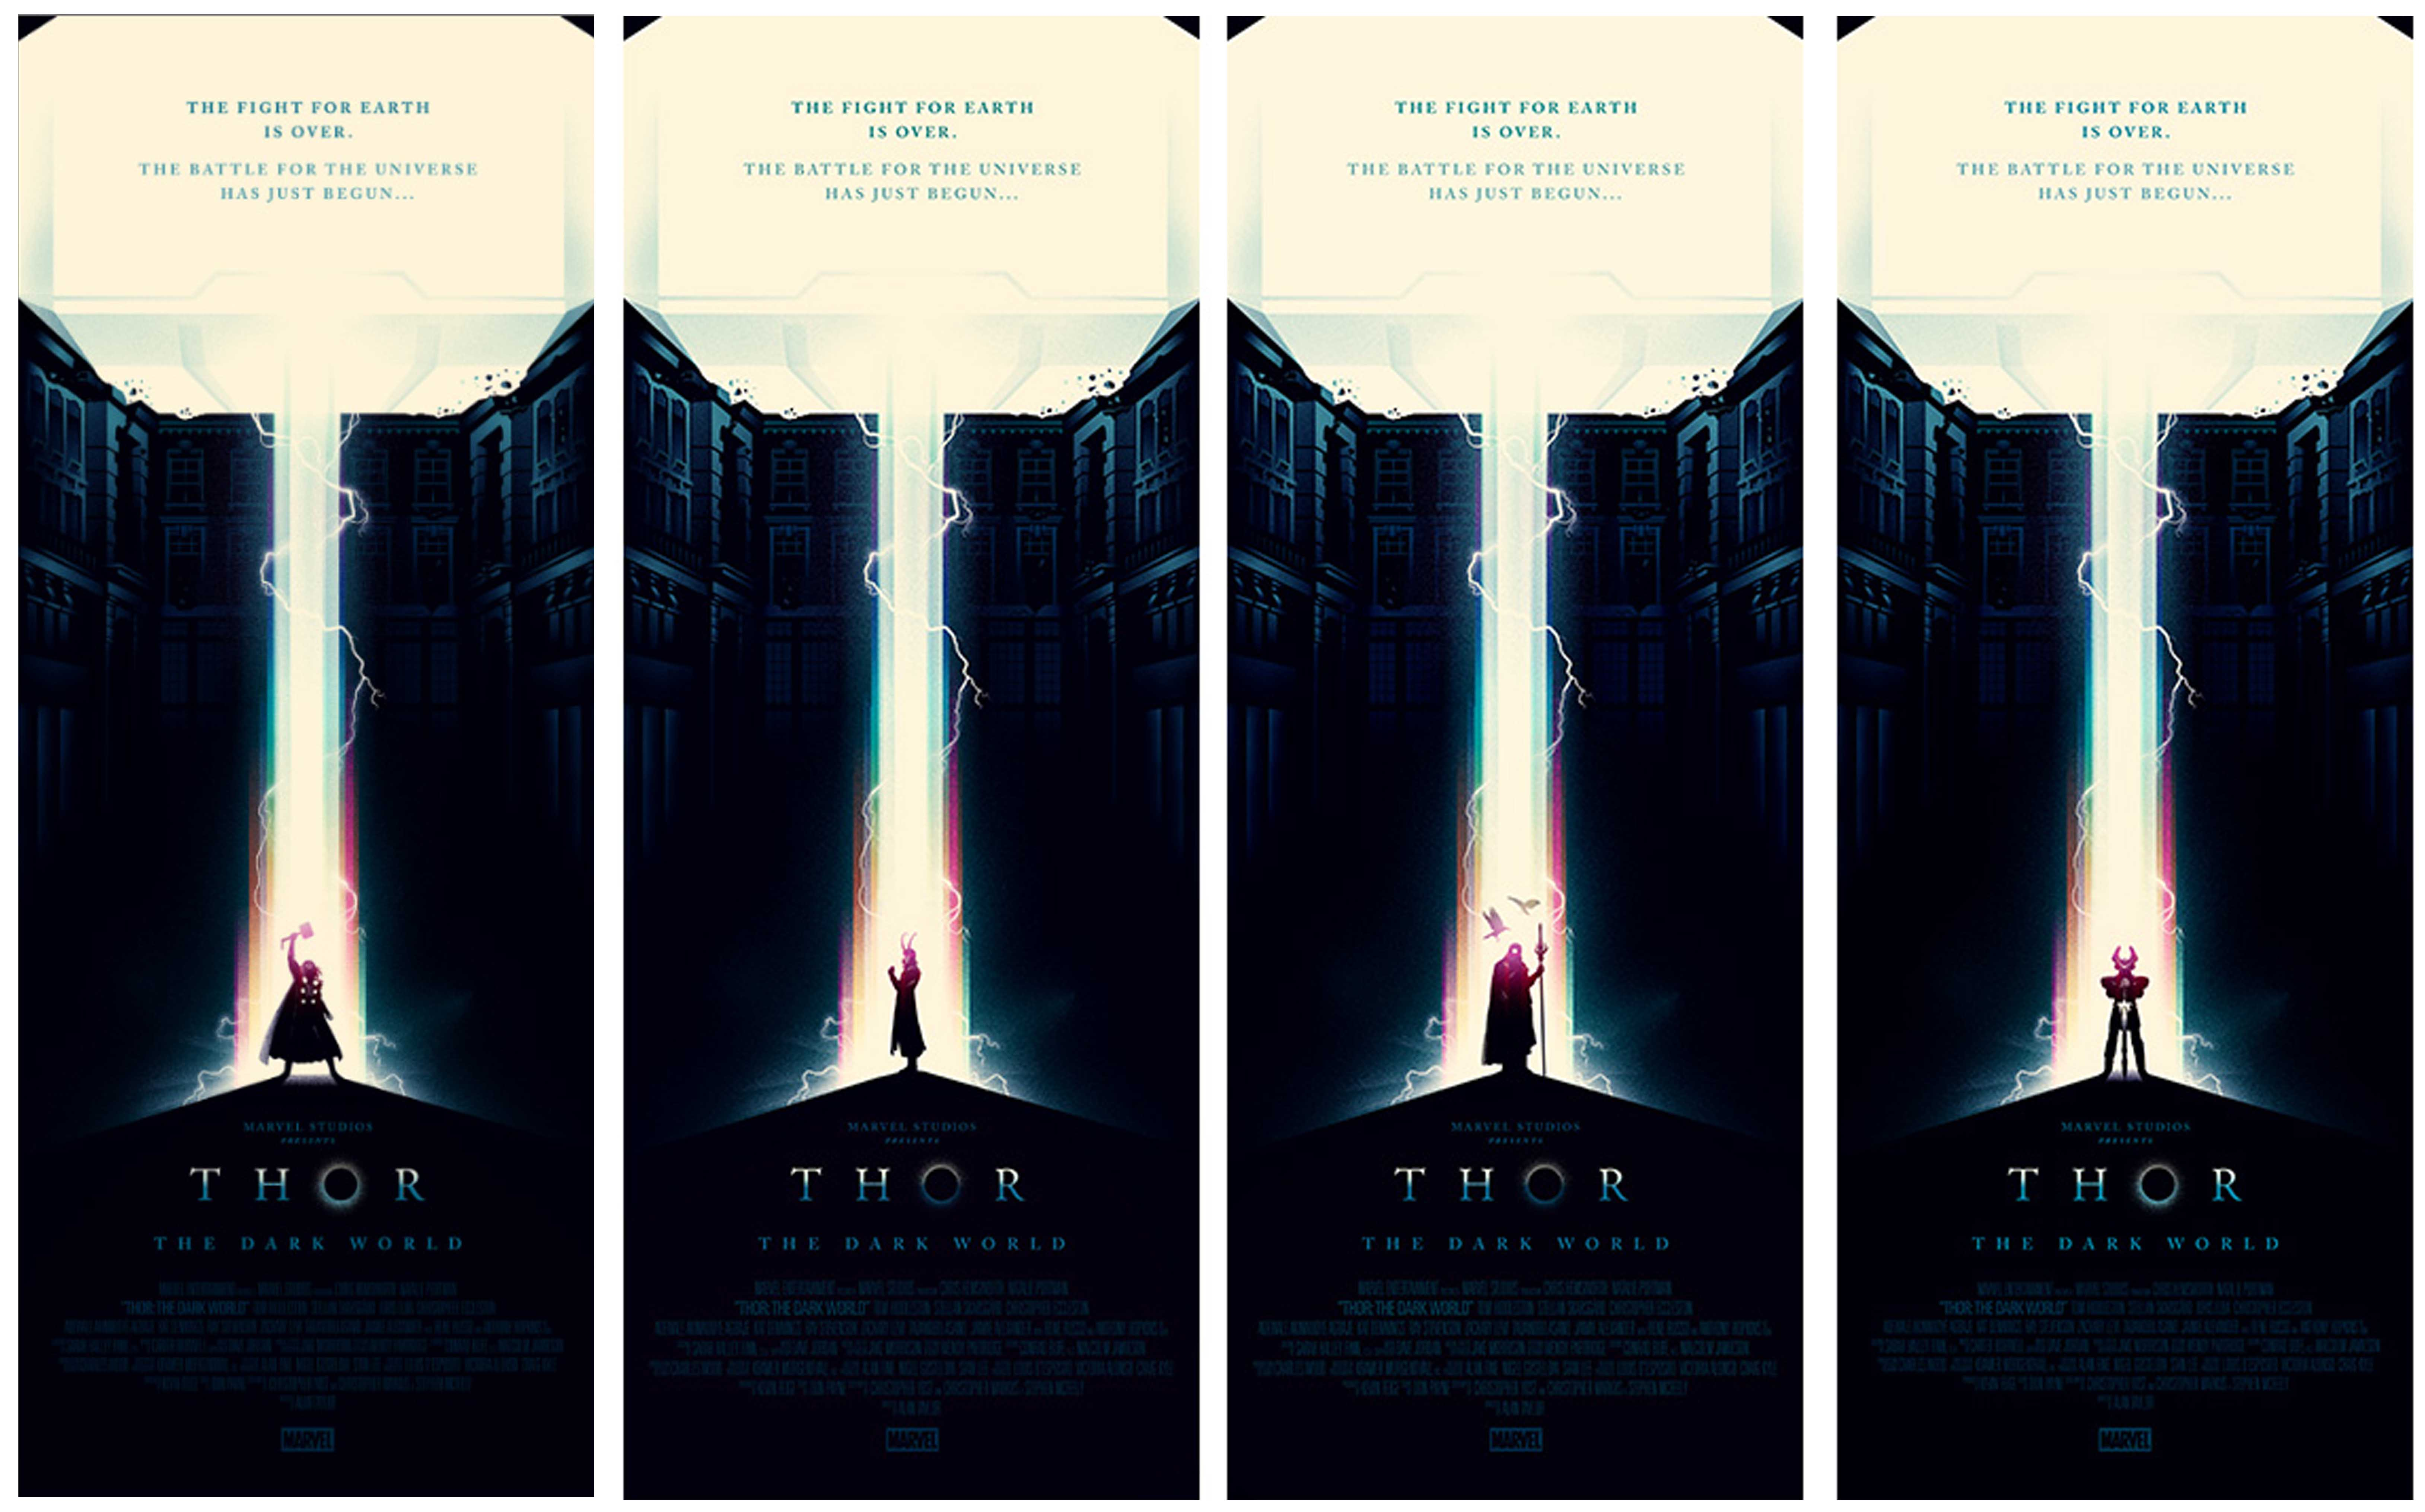 Thor-The Dark World_Olly Moss | socialpsychol